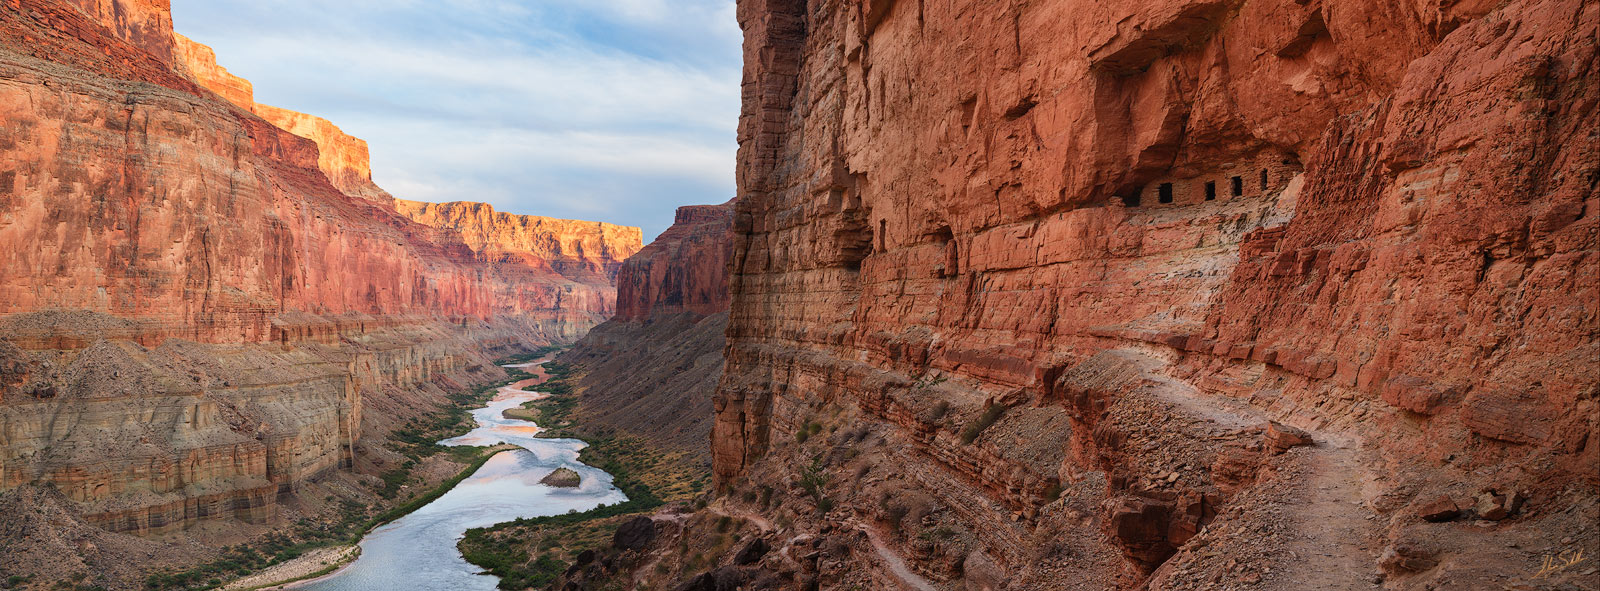 The Nankoweap granaries and Colorado River in Marble Canyon. Grand Canyon National Park. © Adam Schallau, All Rights Reserved...